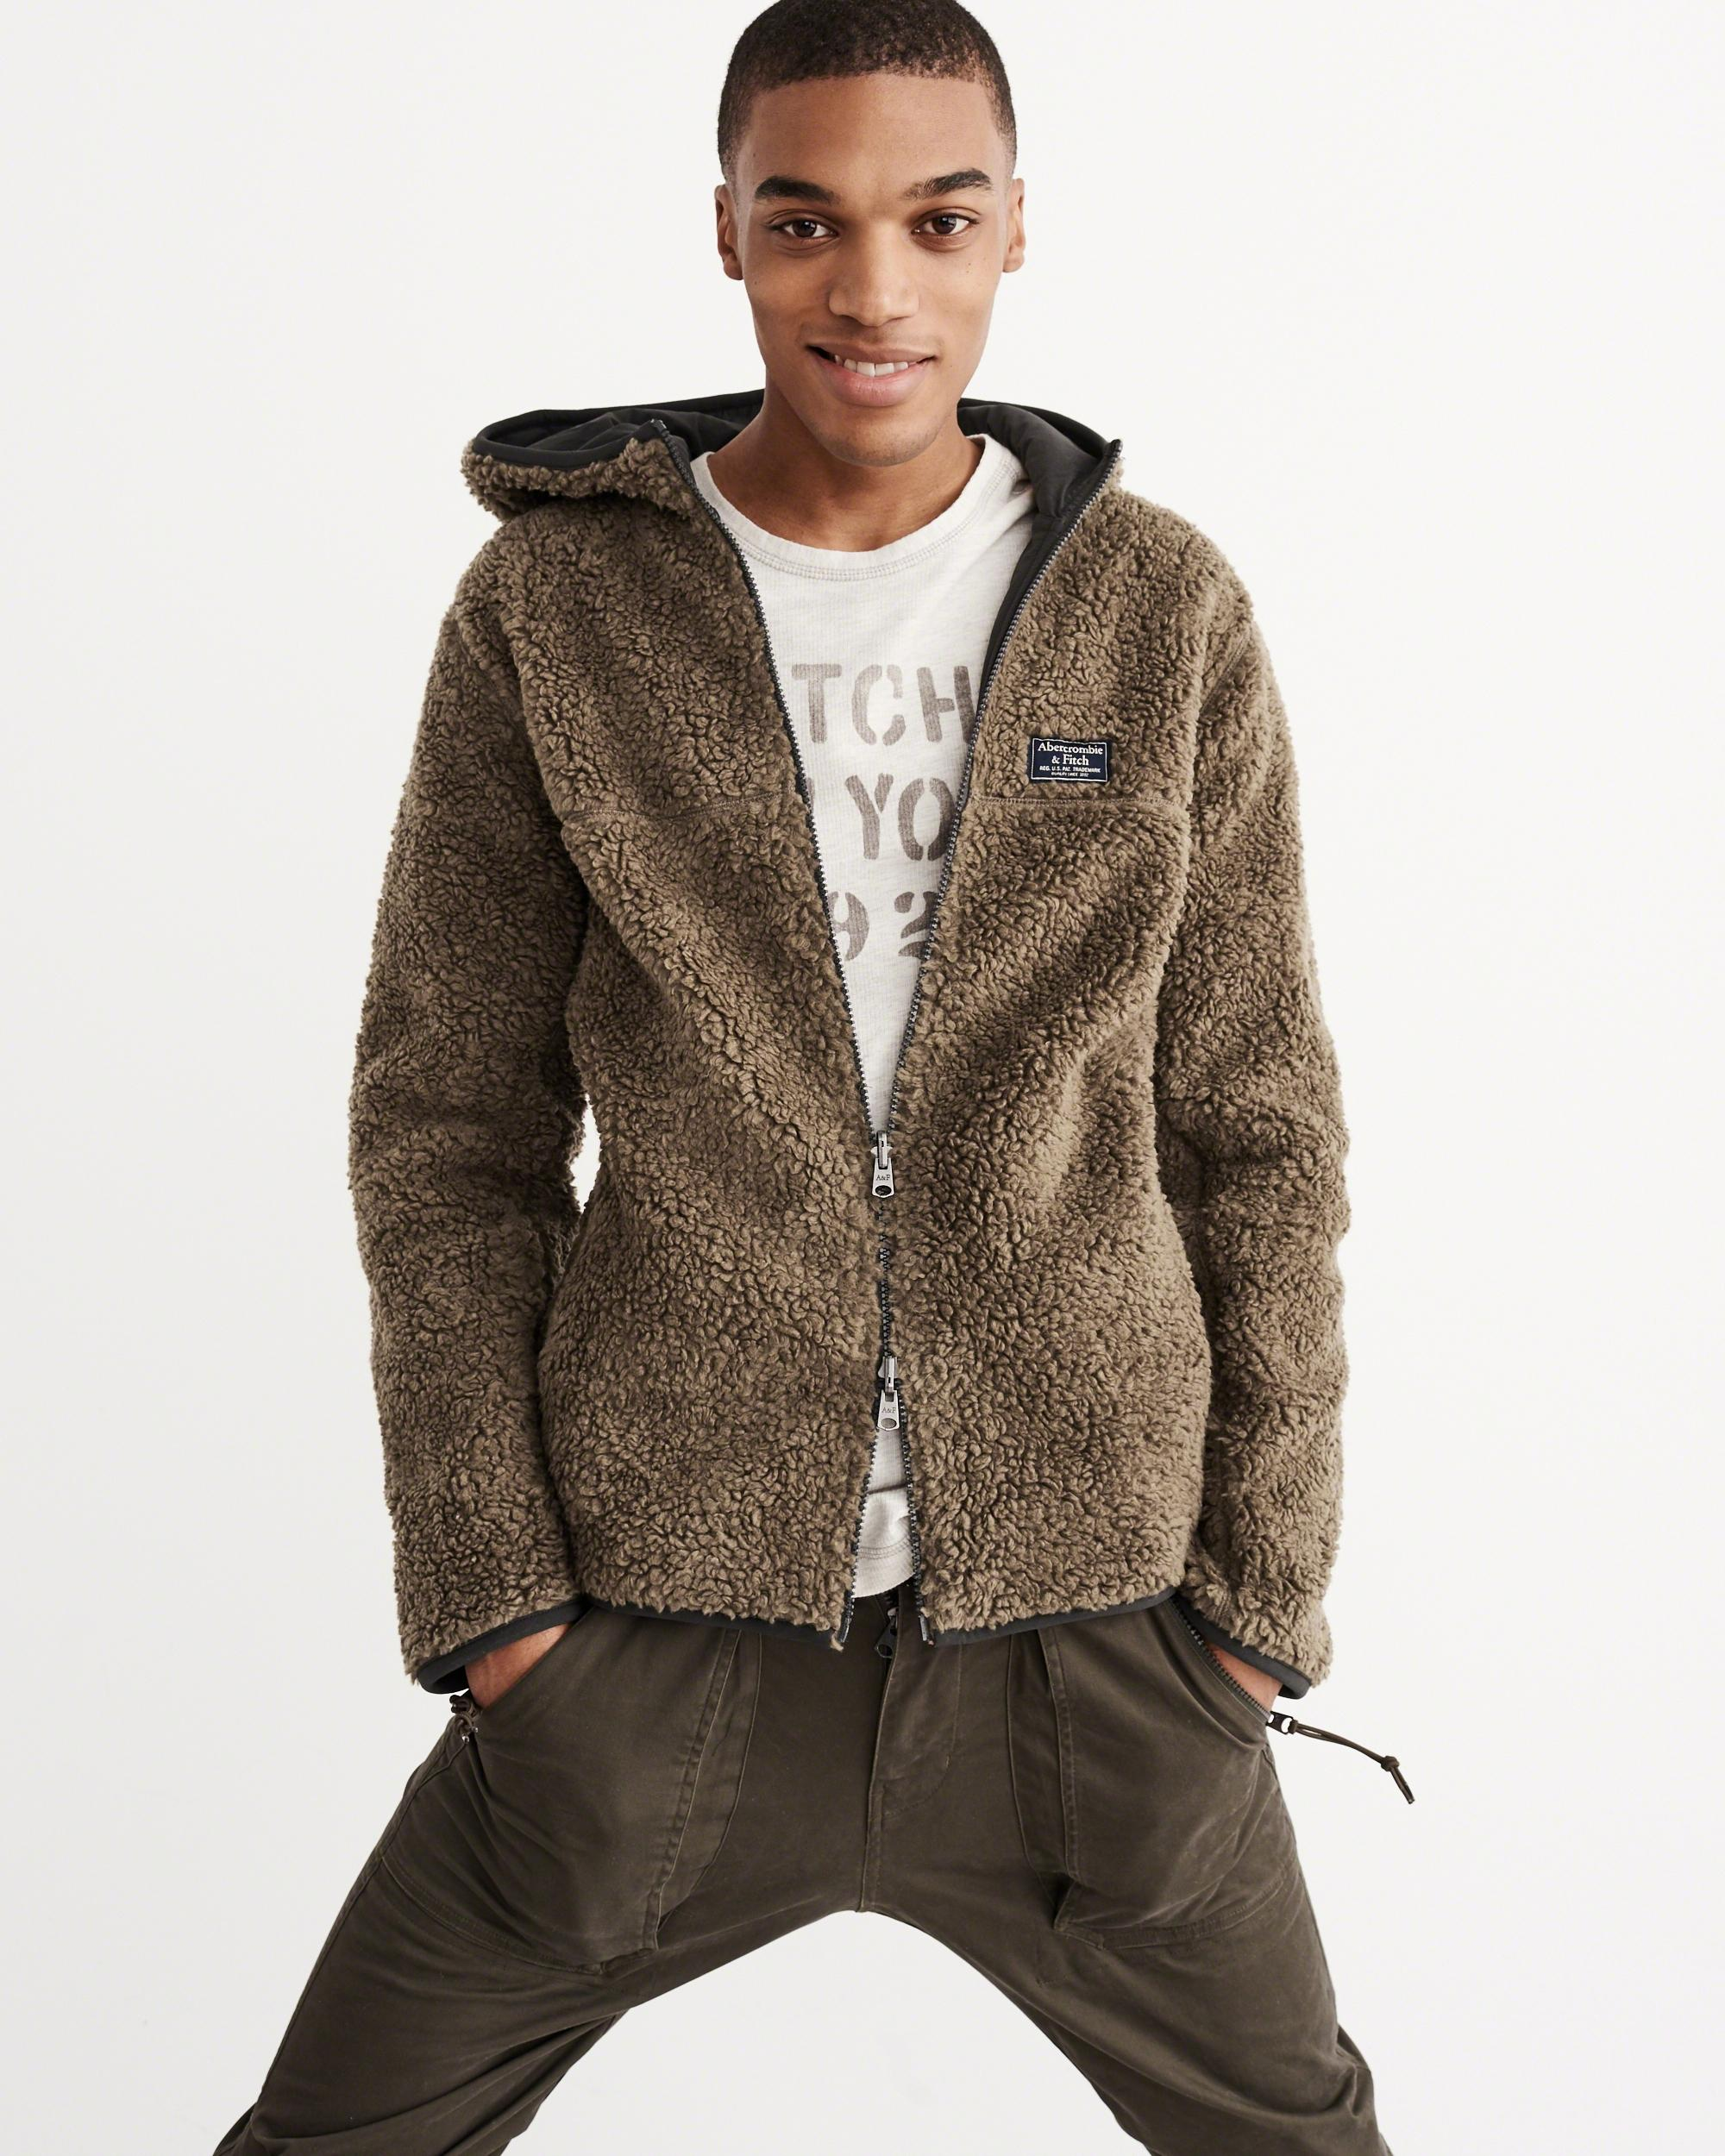 Abercrombie & Fitch Reversible Sherpa Full-zip Jacket In